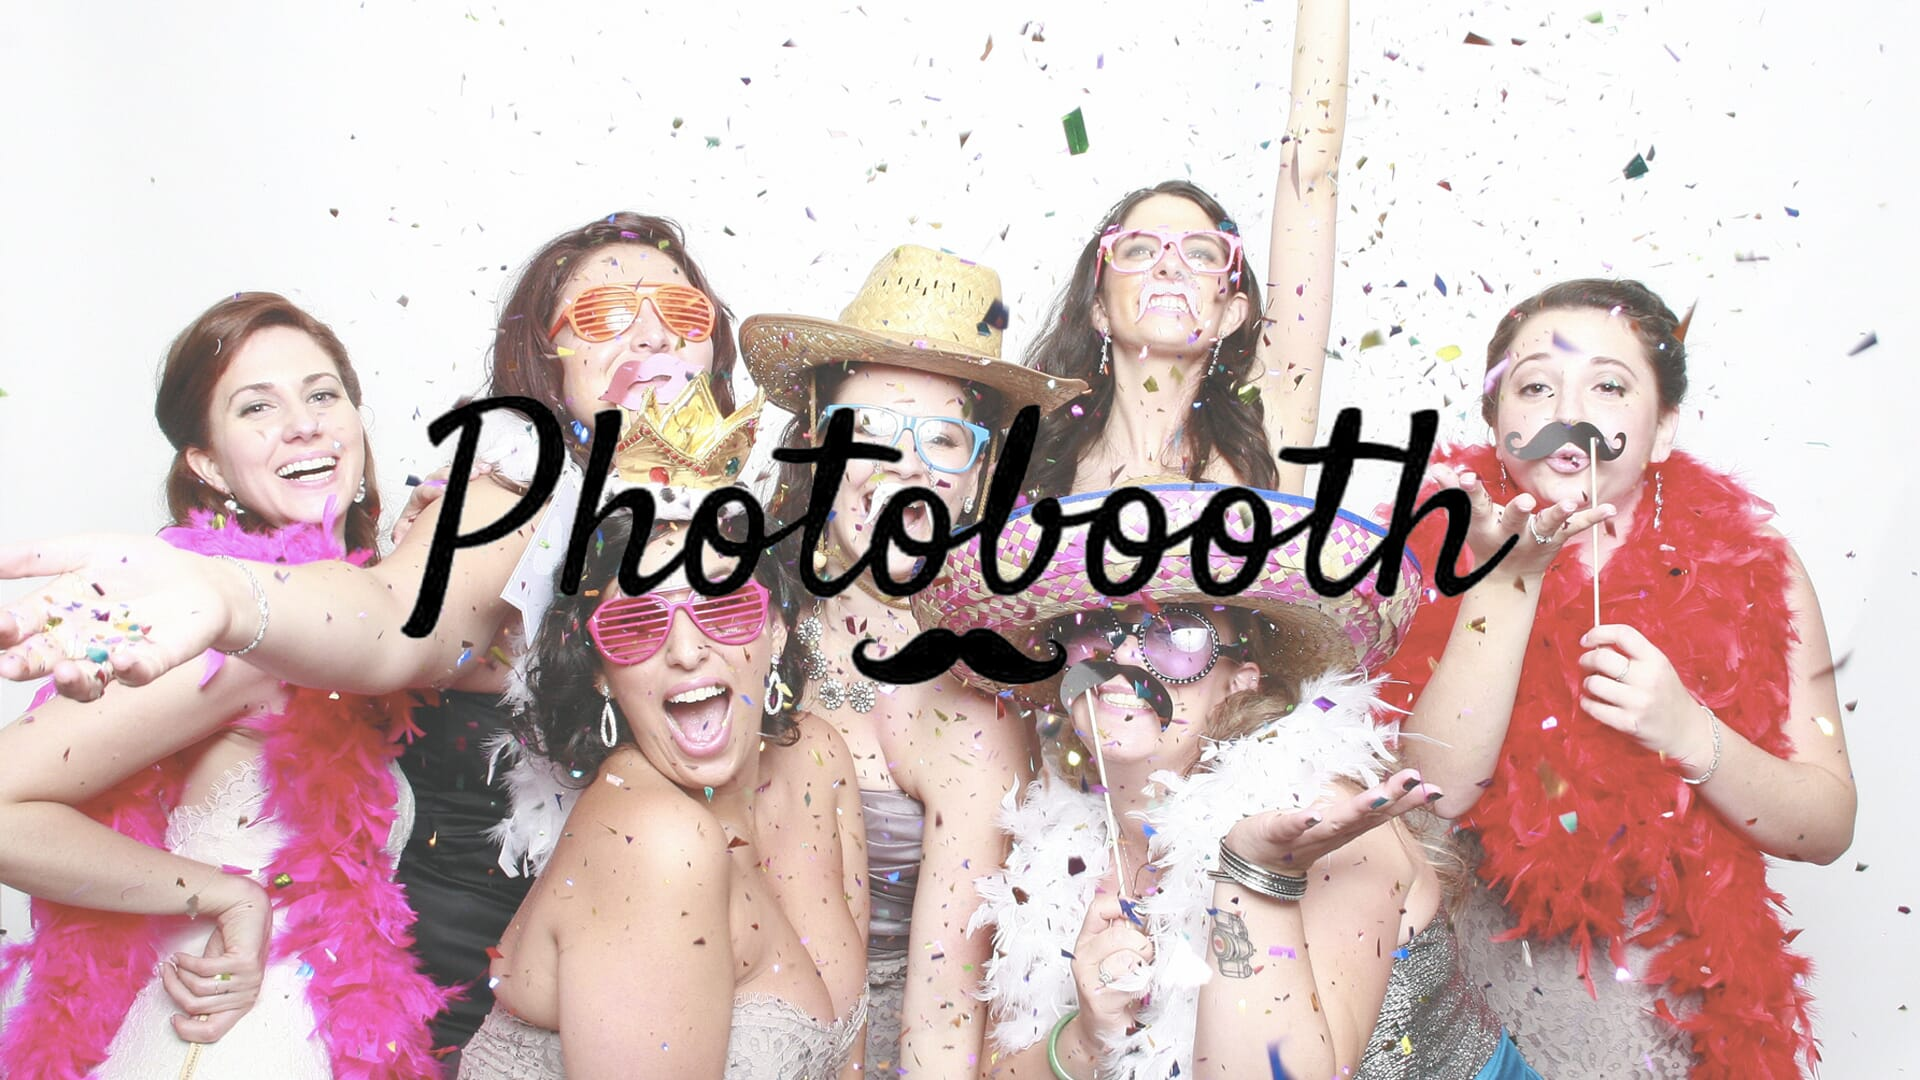 Comment bien choisir son photobooth ?